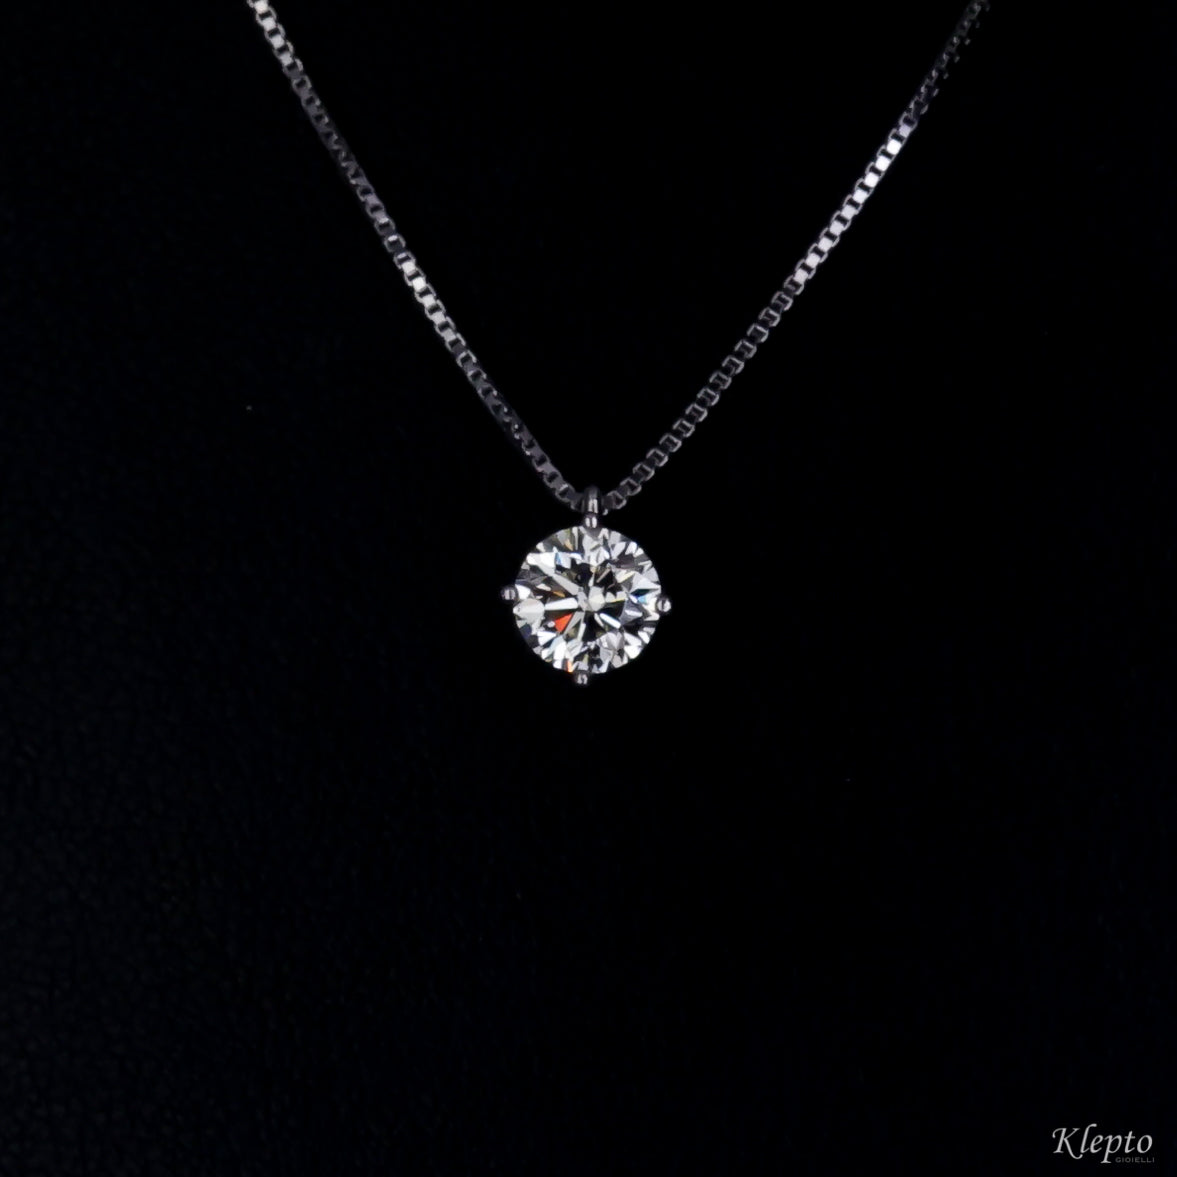 White gold light point pendant with Diamond